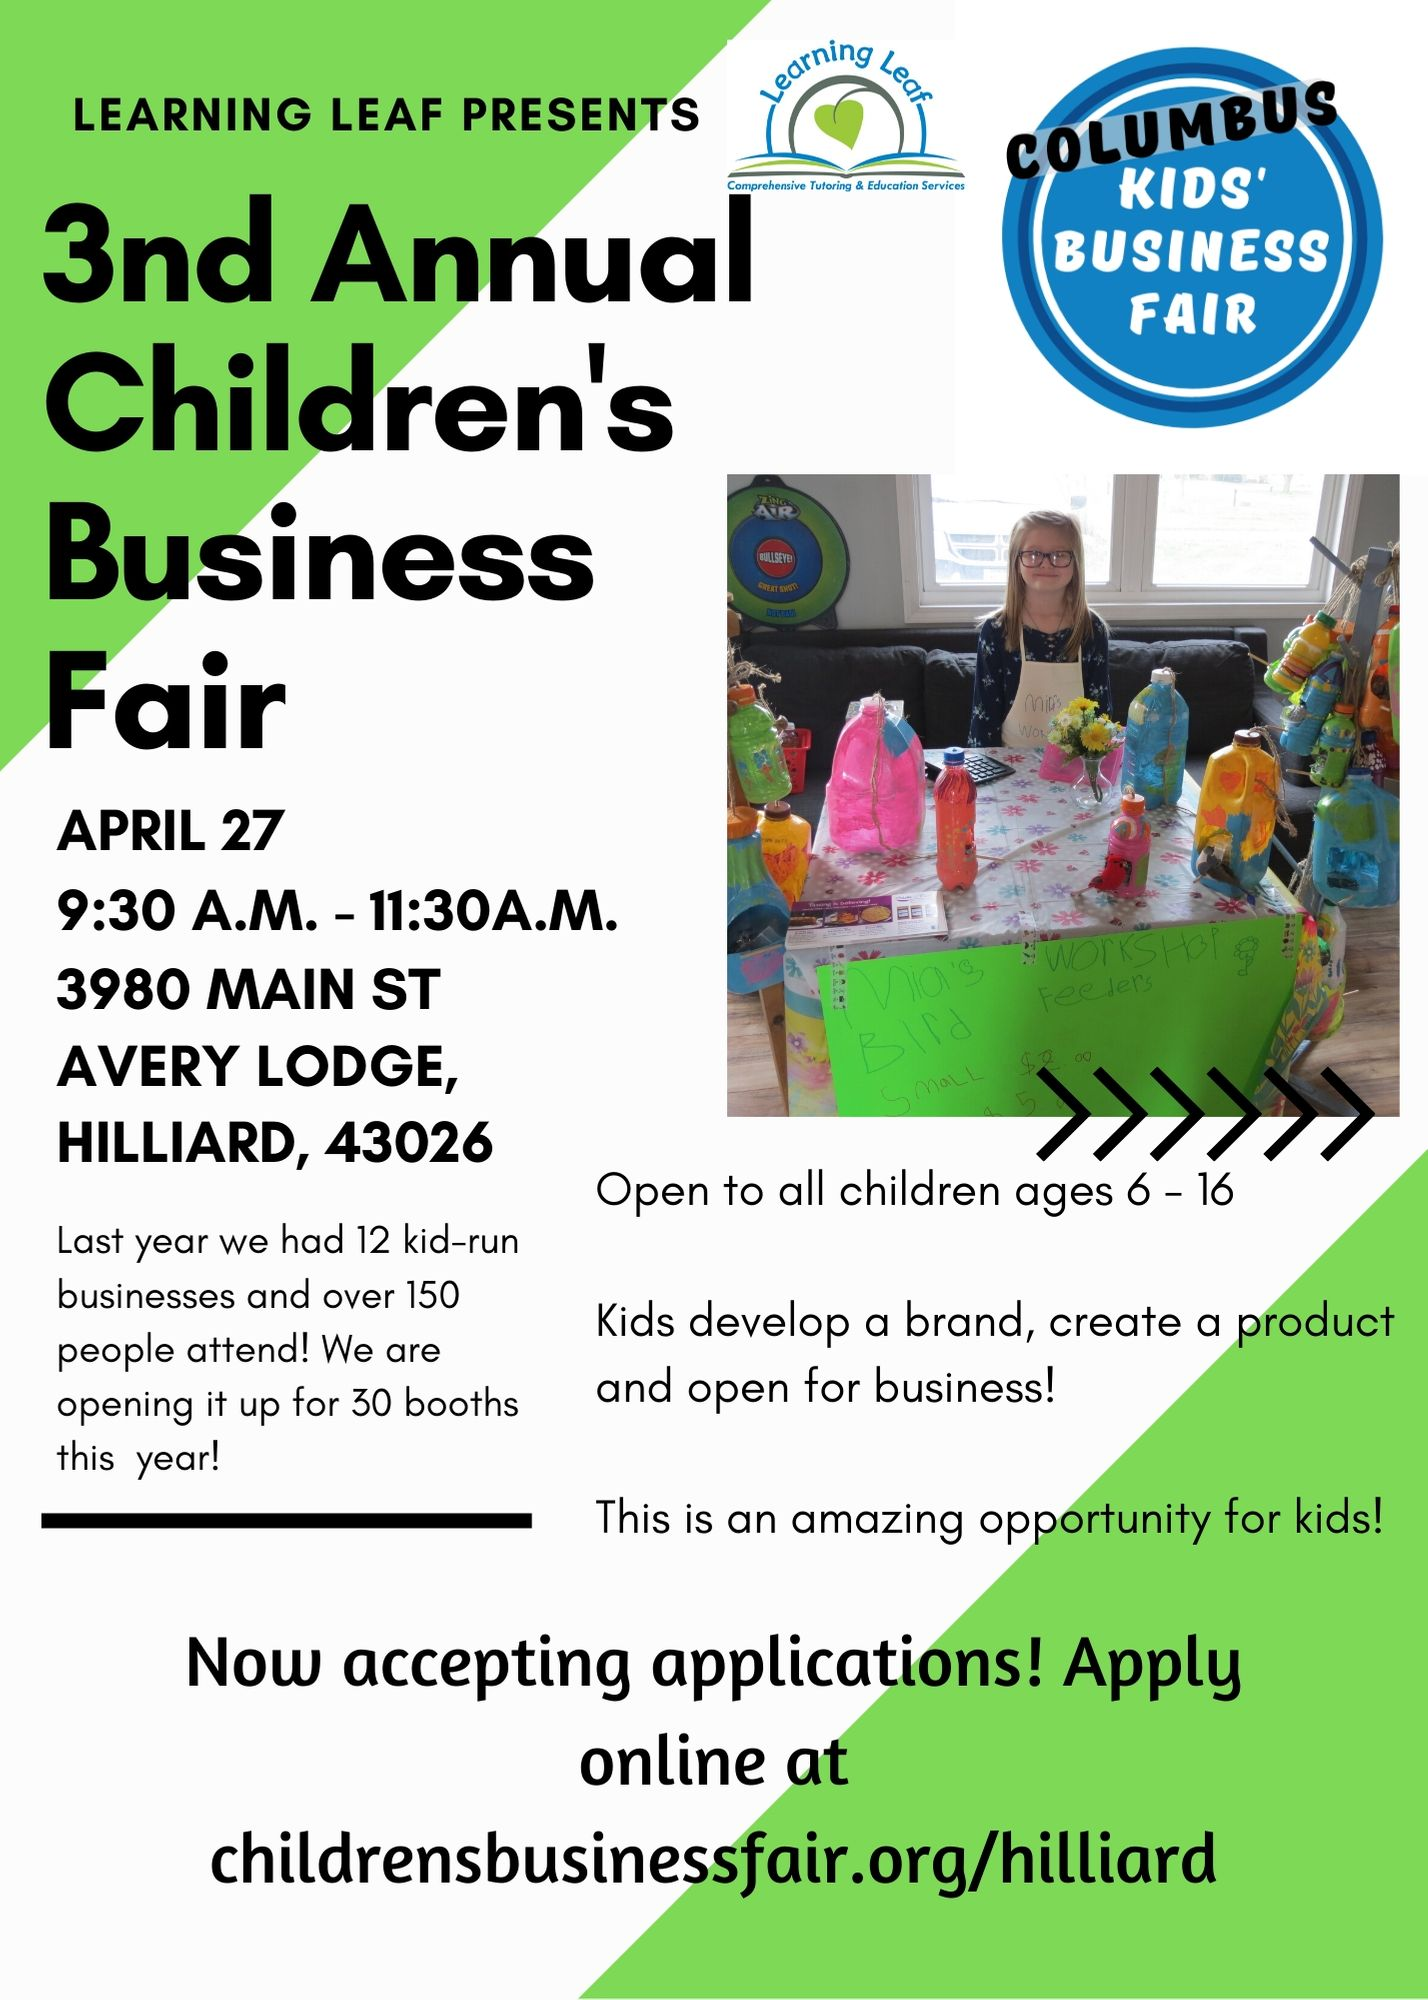 Kids Business Fair - Hilliard